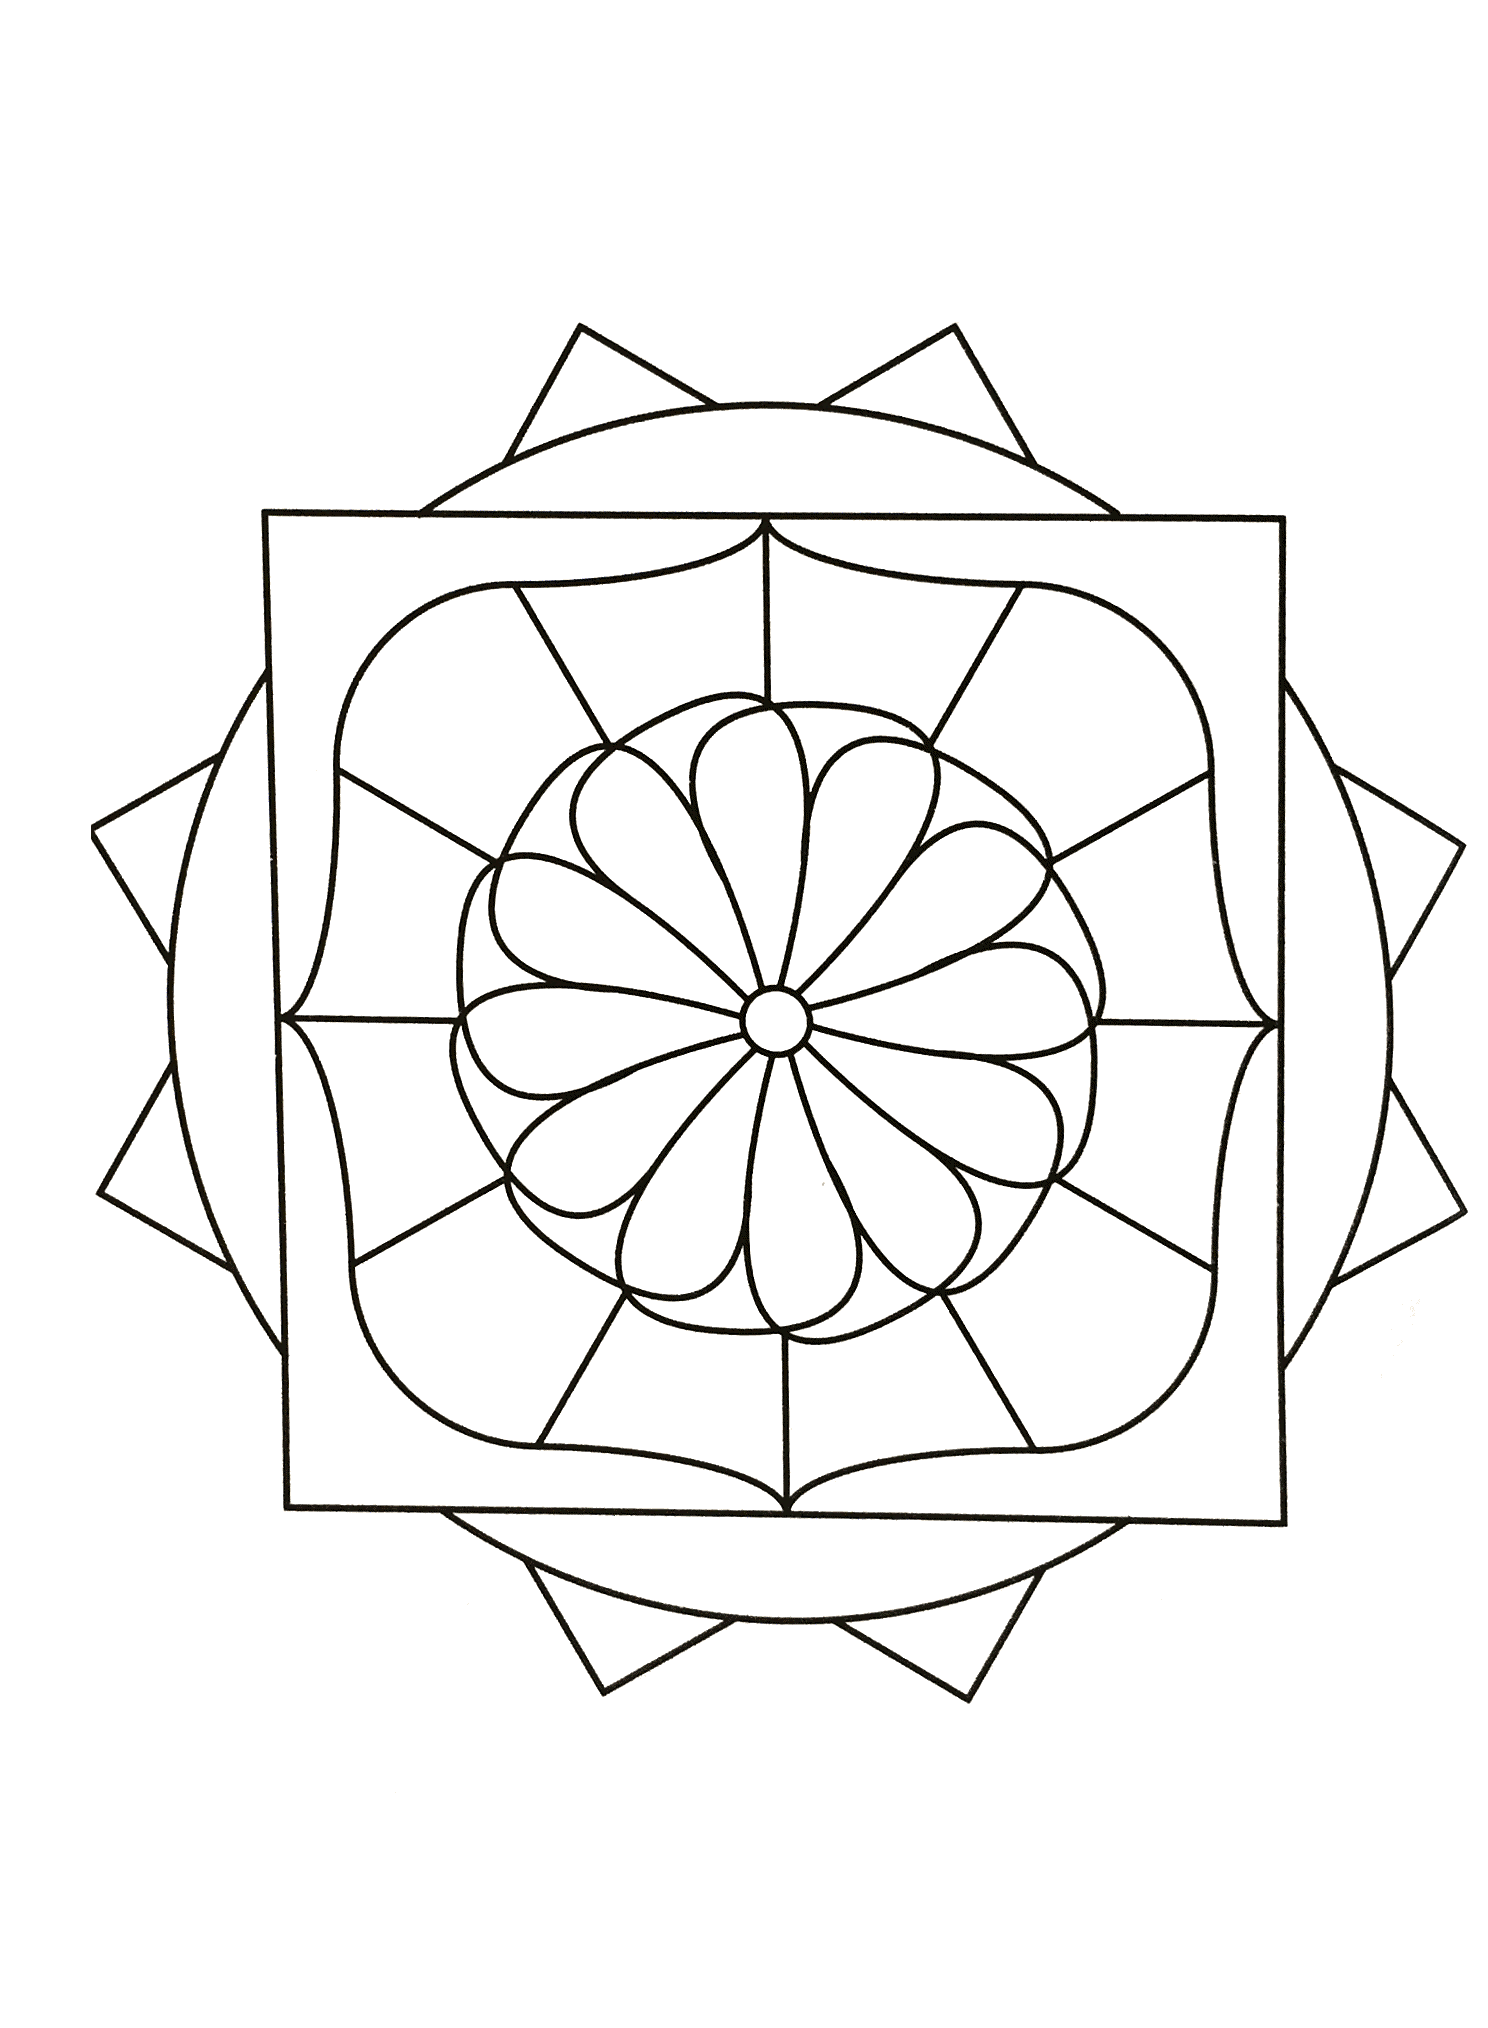 Simple Mandala 82 M Amp Alas Coloring Pages For Kids To